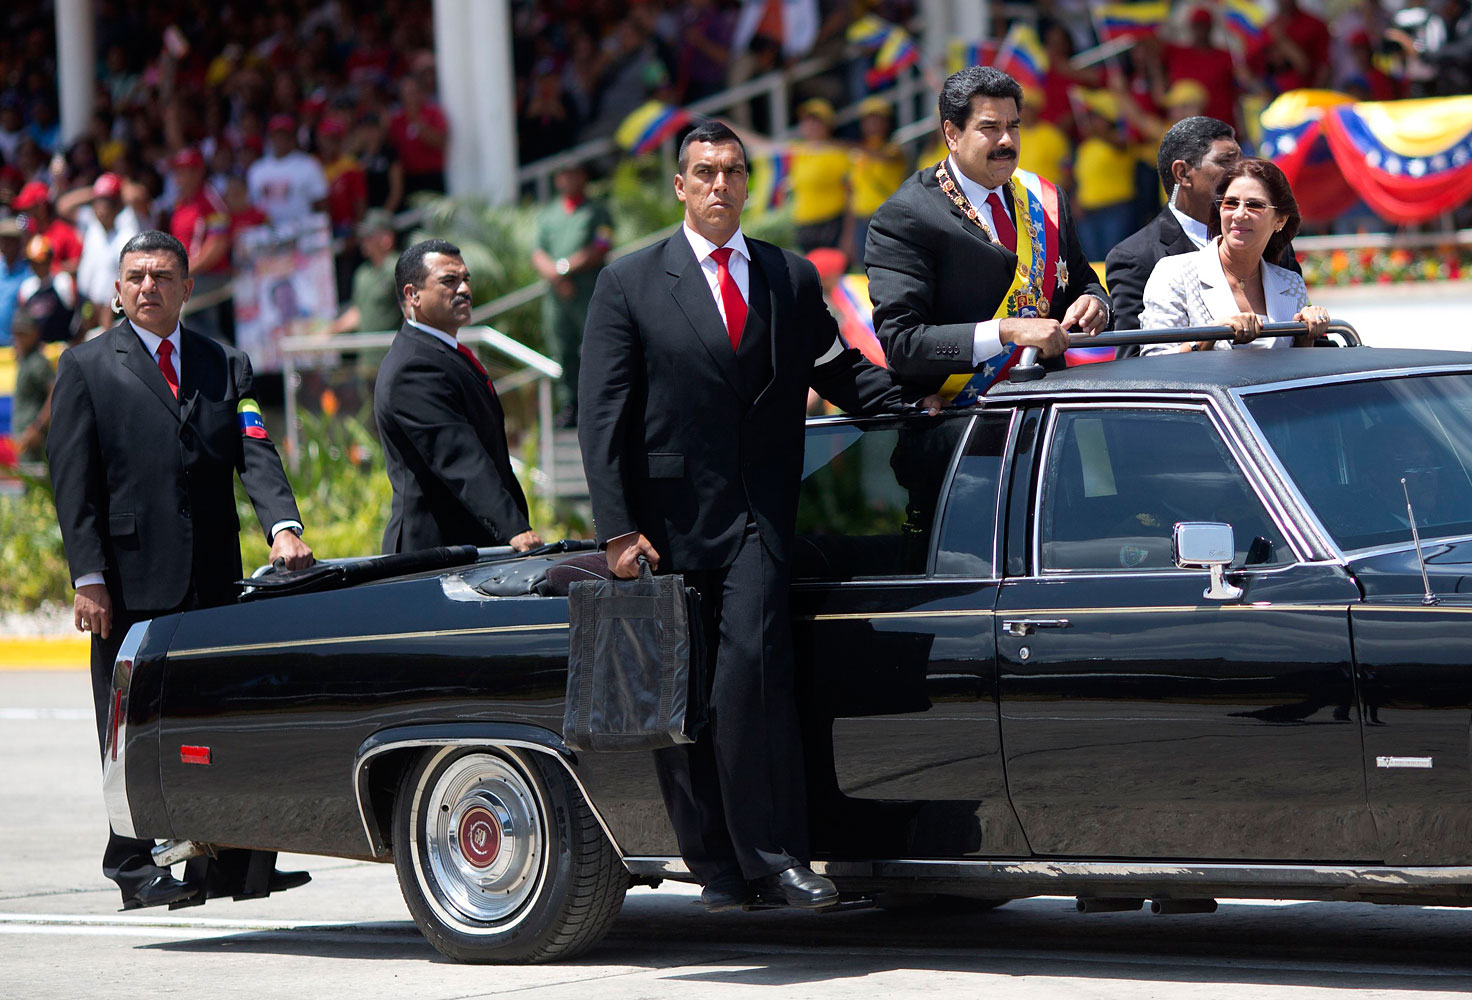 Venezuela's President Nicolas Maduro stands in a convertible limousine next to first lady Cilia Flores as security guards stand on the sides of the car during a military parade commemorating the one year anniversary of the death of Venezuela's former President Hugo Chavez in Caracas, March 5, 2014.